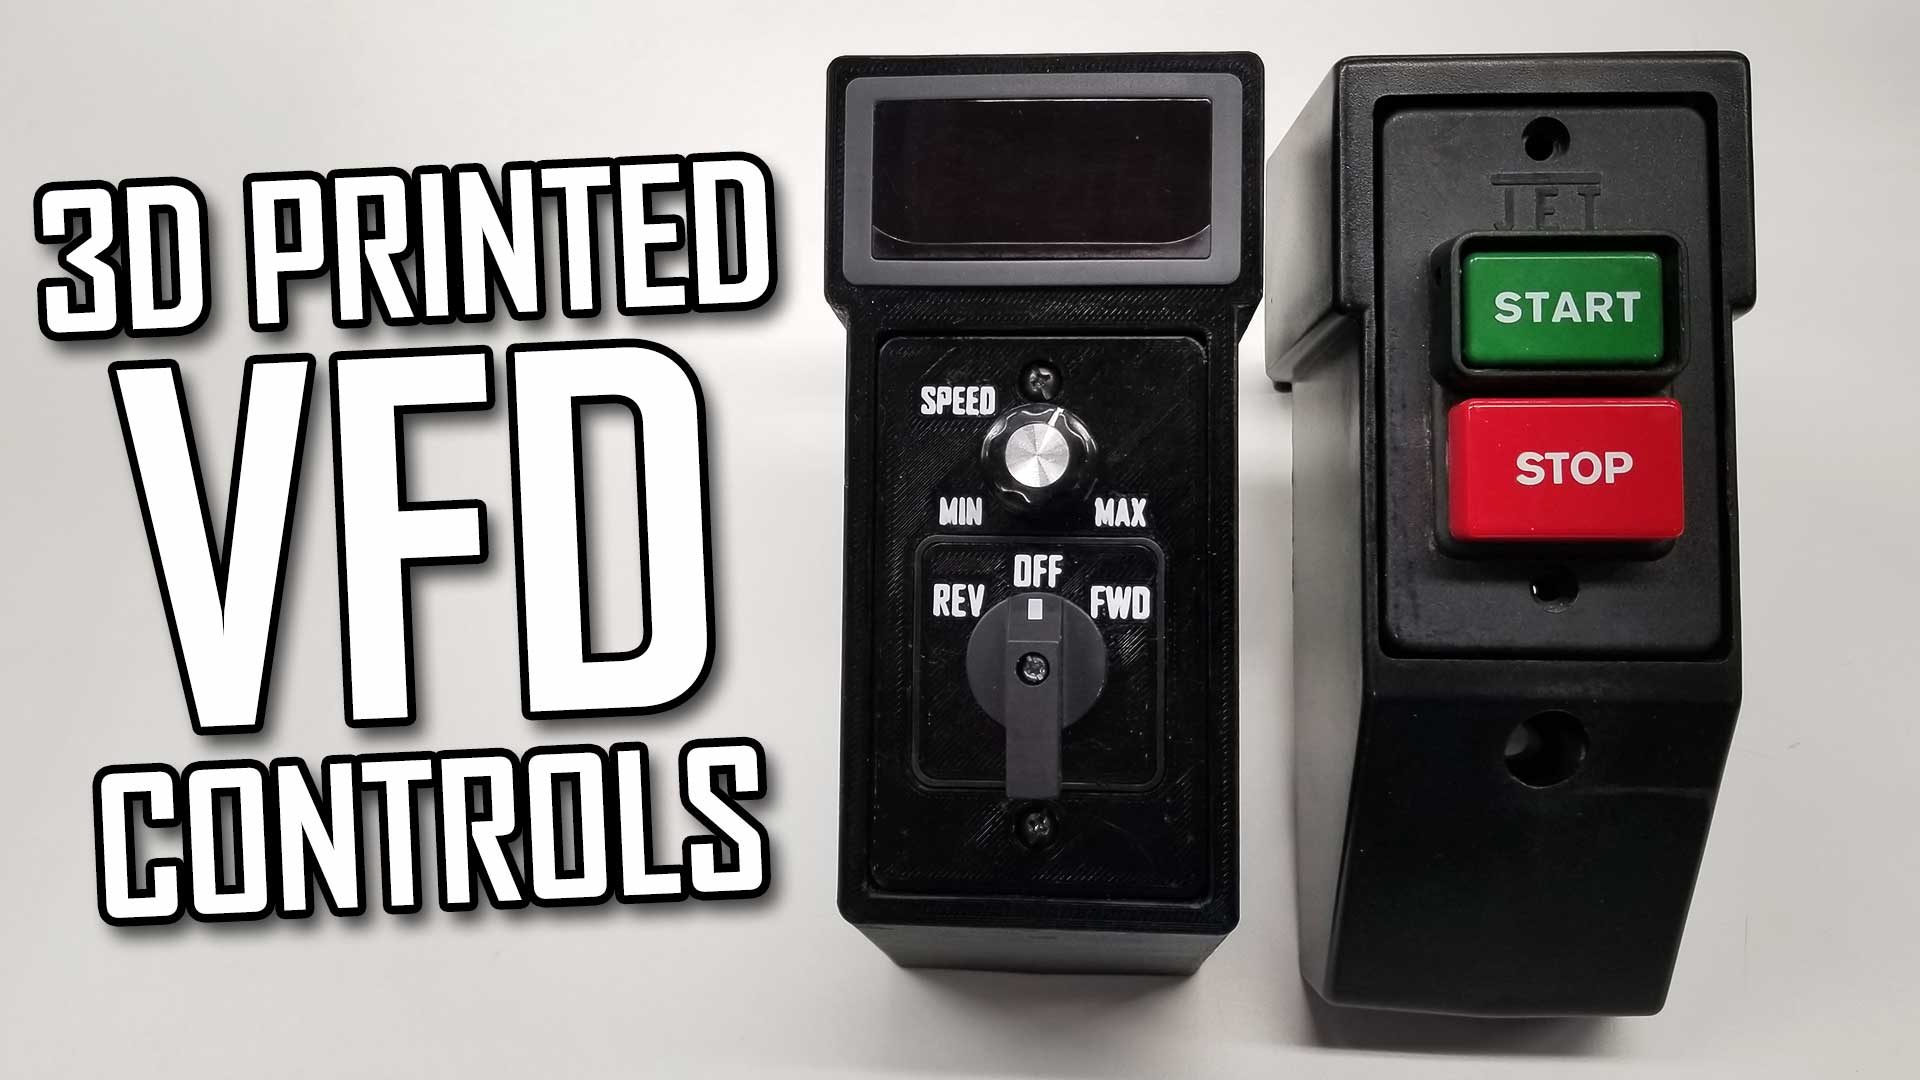 3D Printing a Drill Press VFD Control Panel with Loft, Shell and Rib in Fusion 360